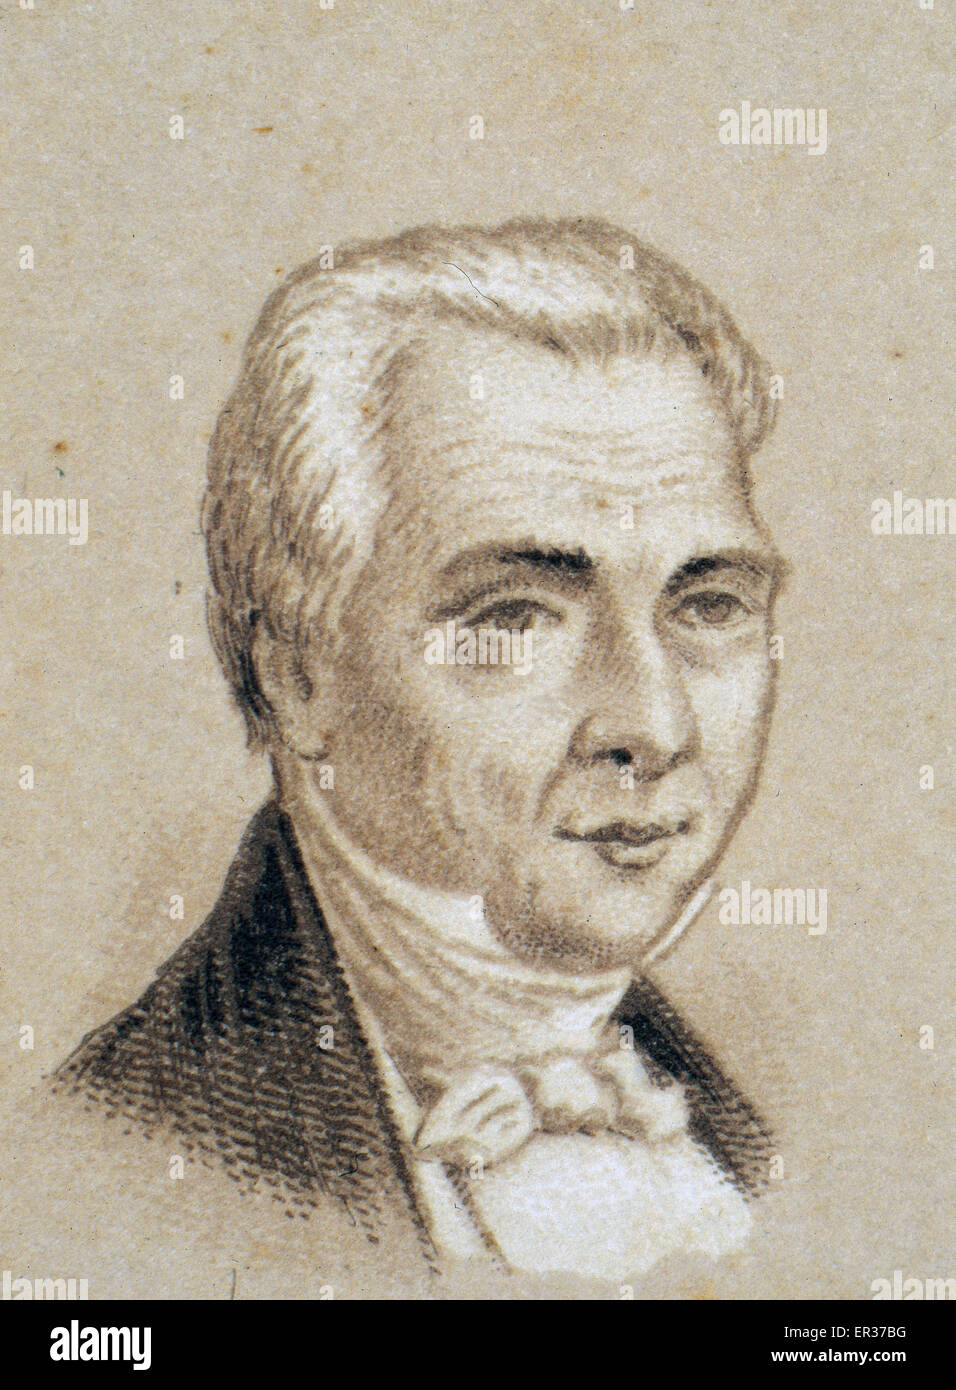 <b>Jose Mariano</b> Michelena (1772-1852). Mexican military officer and politician. - jose-mariano-michelena-1772-1852-mexican-military-officer-and-politician-ER37BG